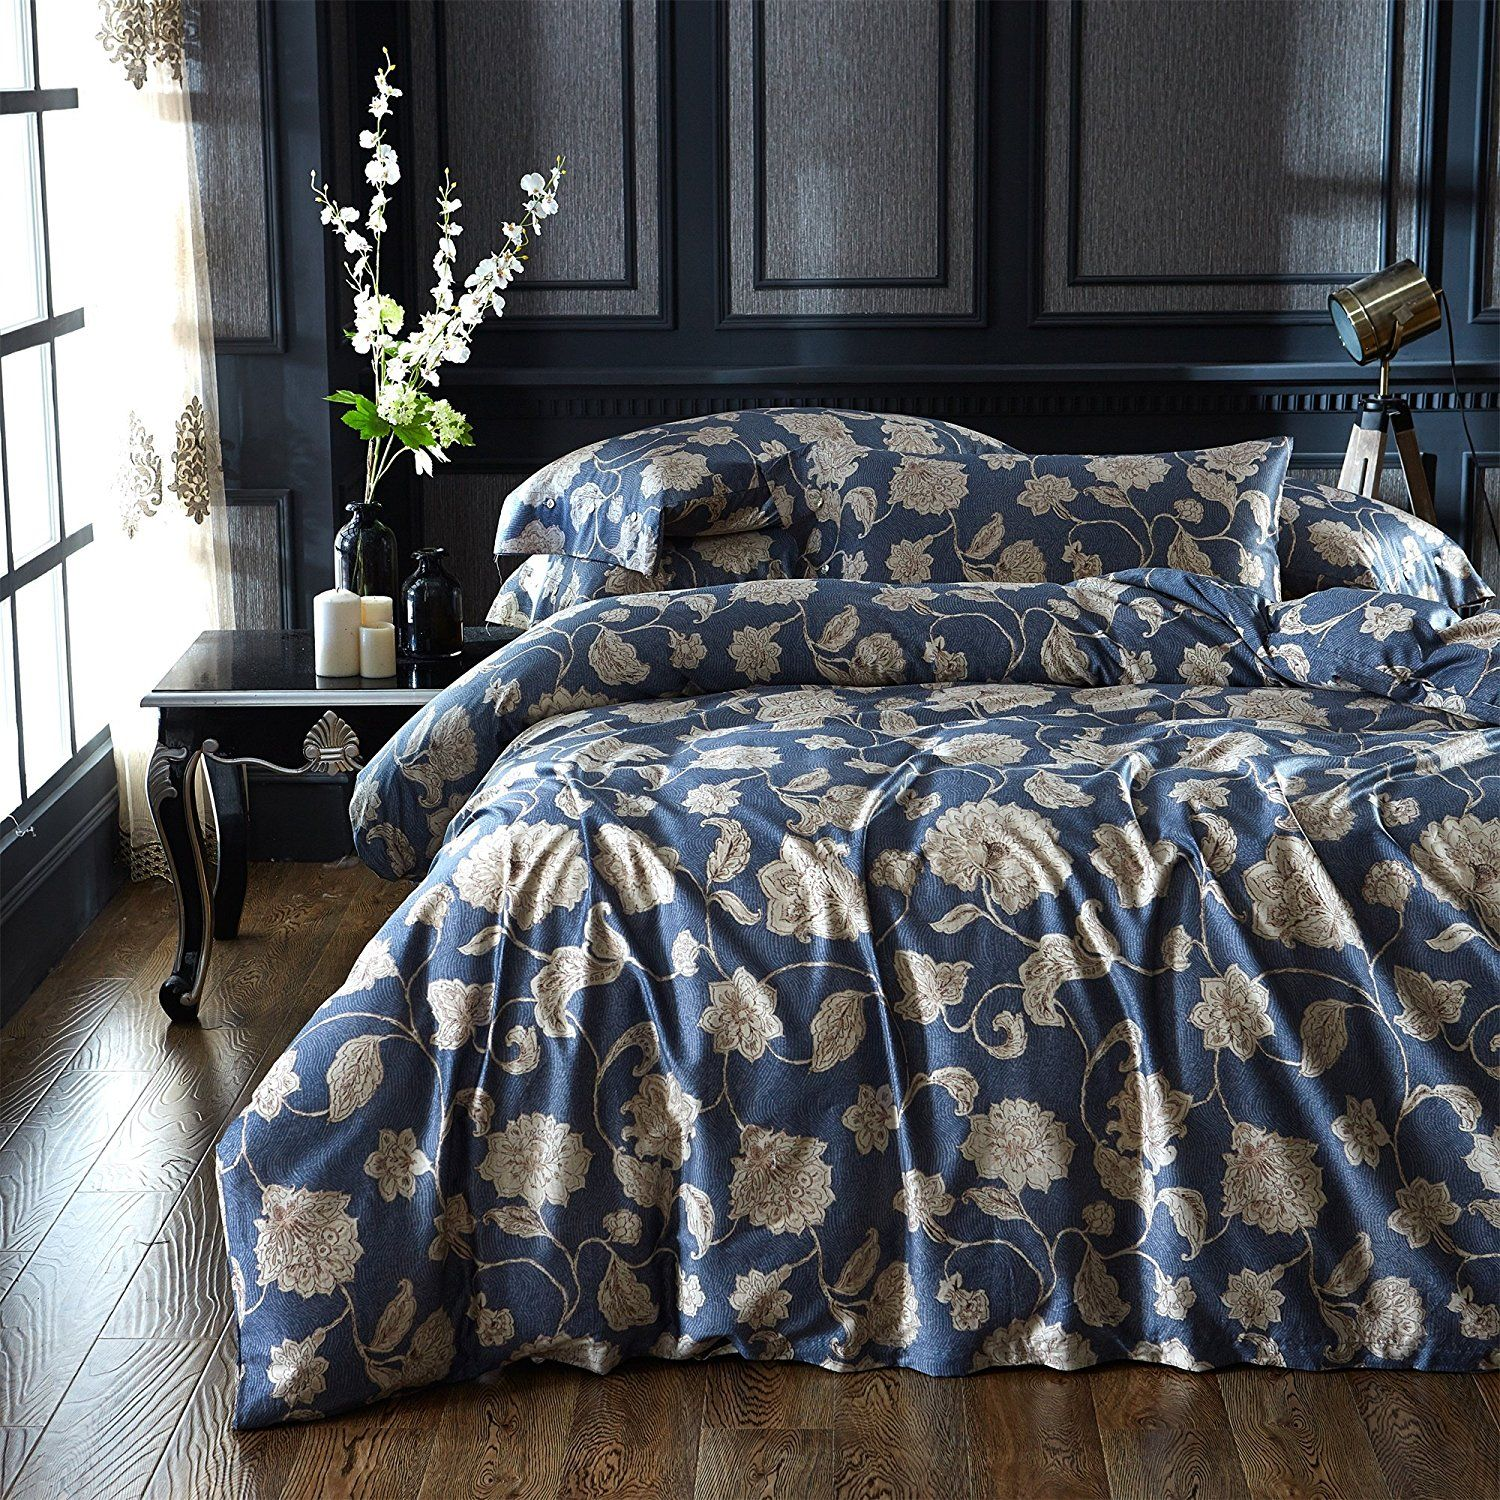 Navy blue and tan bedding - White And Blue Floral Bedding Brandream Eastern Floral Chinoiserie Blossom Print Duvet Quilt Cover Navy